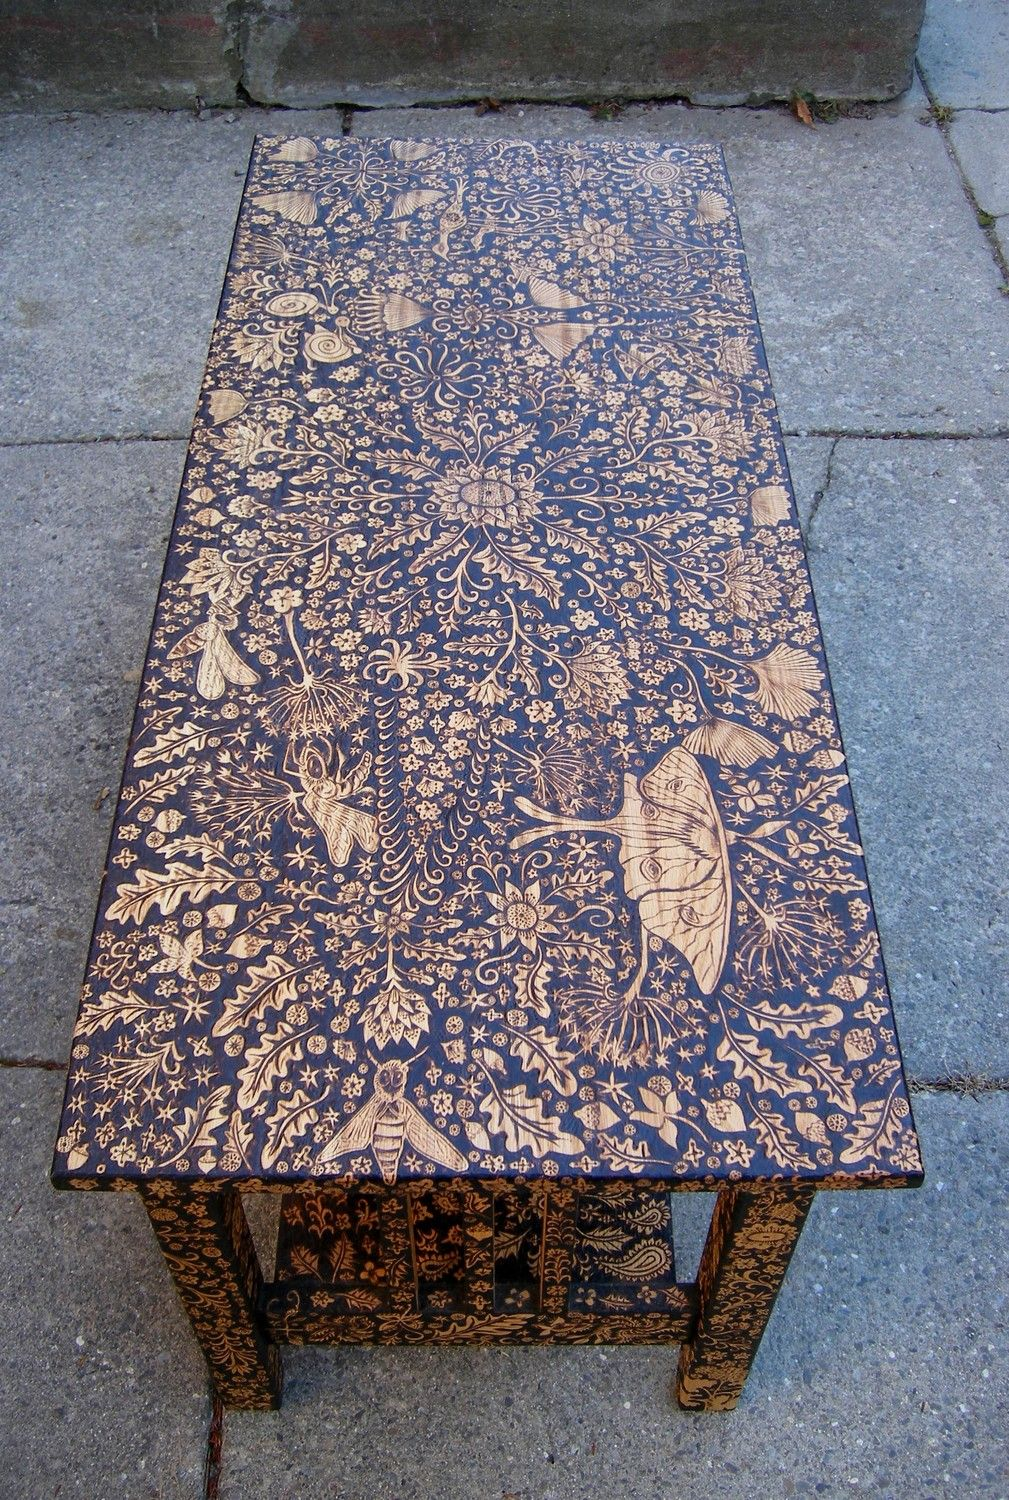 Wood burned coffee table by cecilia galluccio coffee for Burned wood furniture